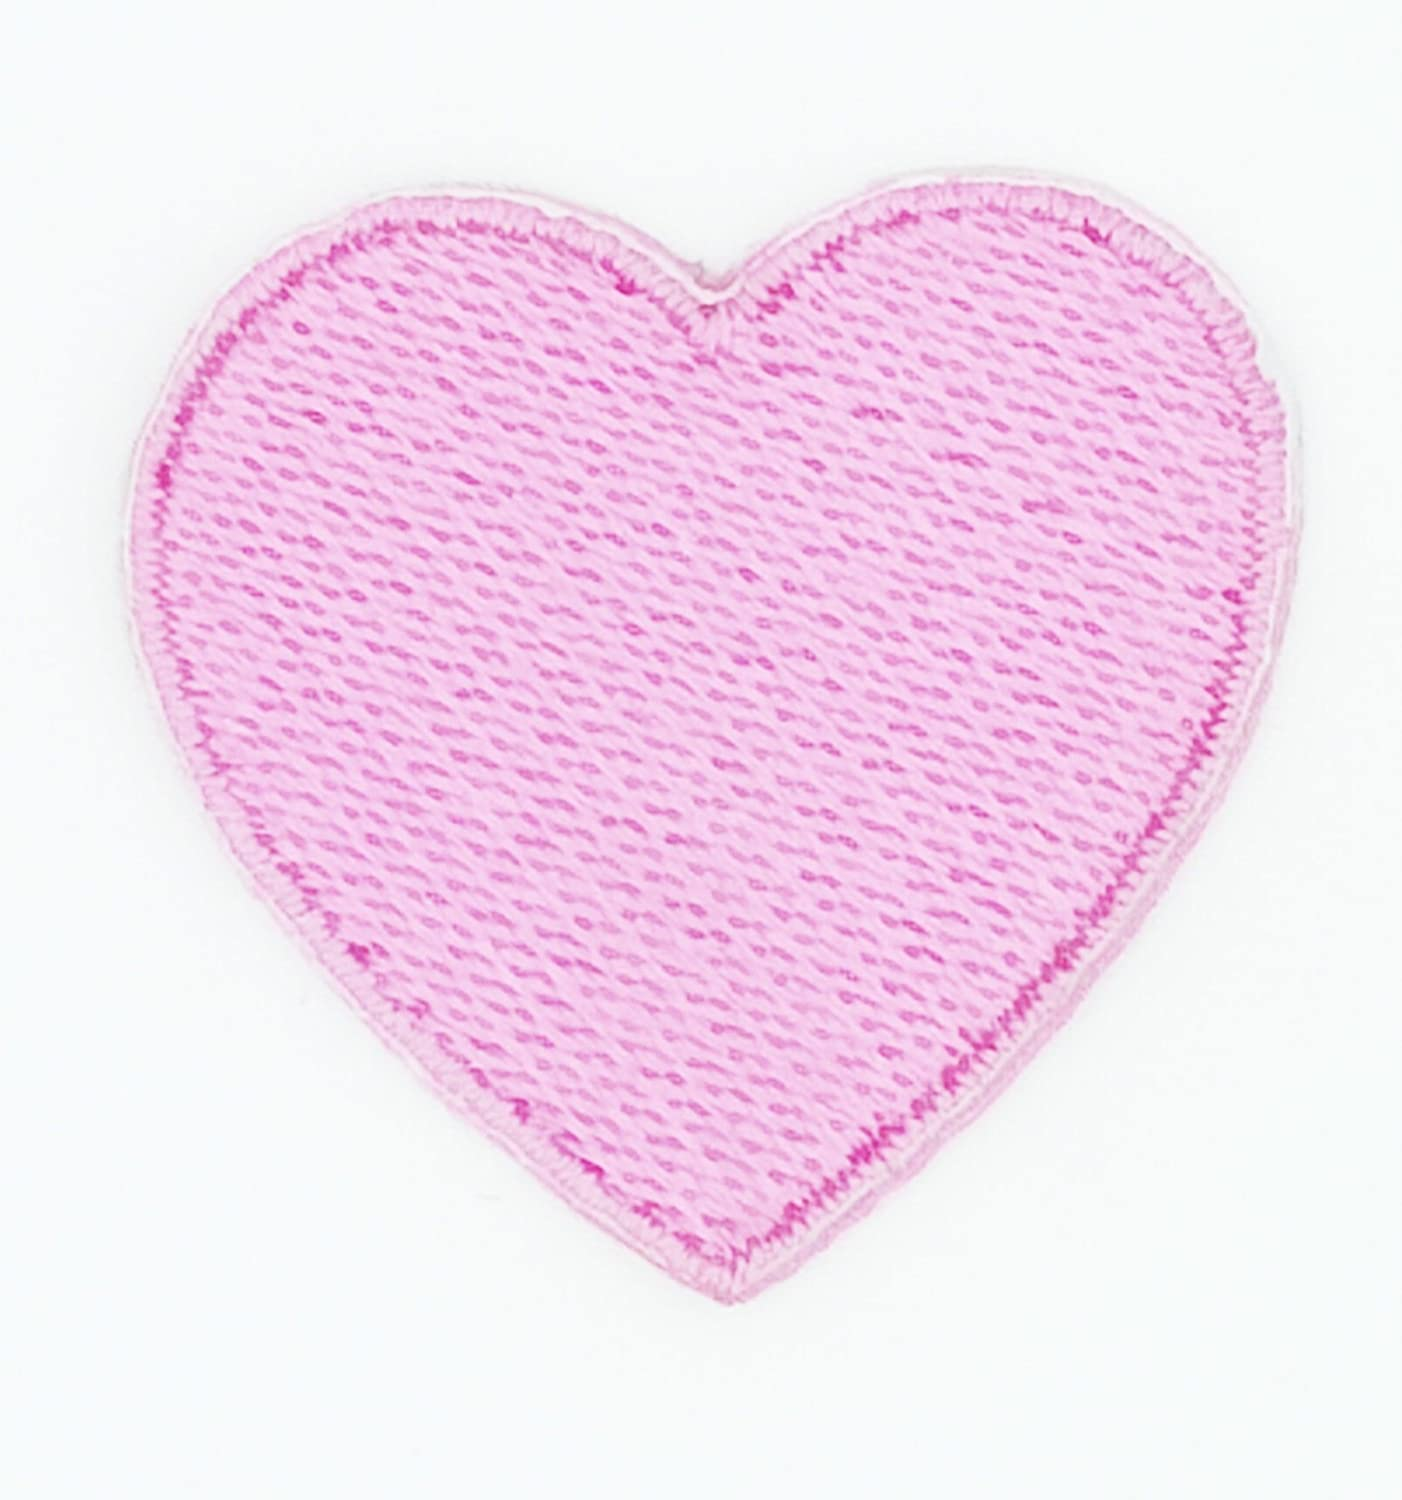 Pink Heart Sequin Patches\uff0cDIY Punk Heart Pattern Embroidered Applique Sewing Stickers Large Patch Paillette Patches For Clothing BG14